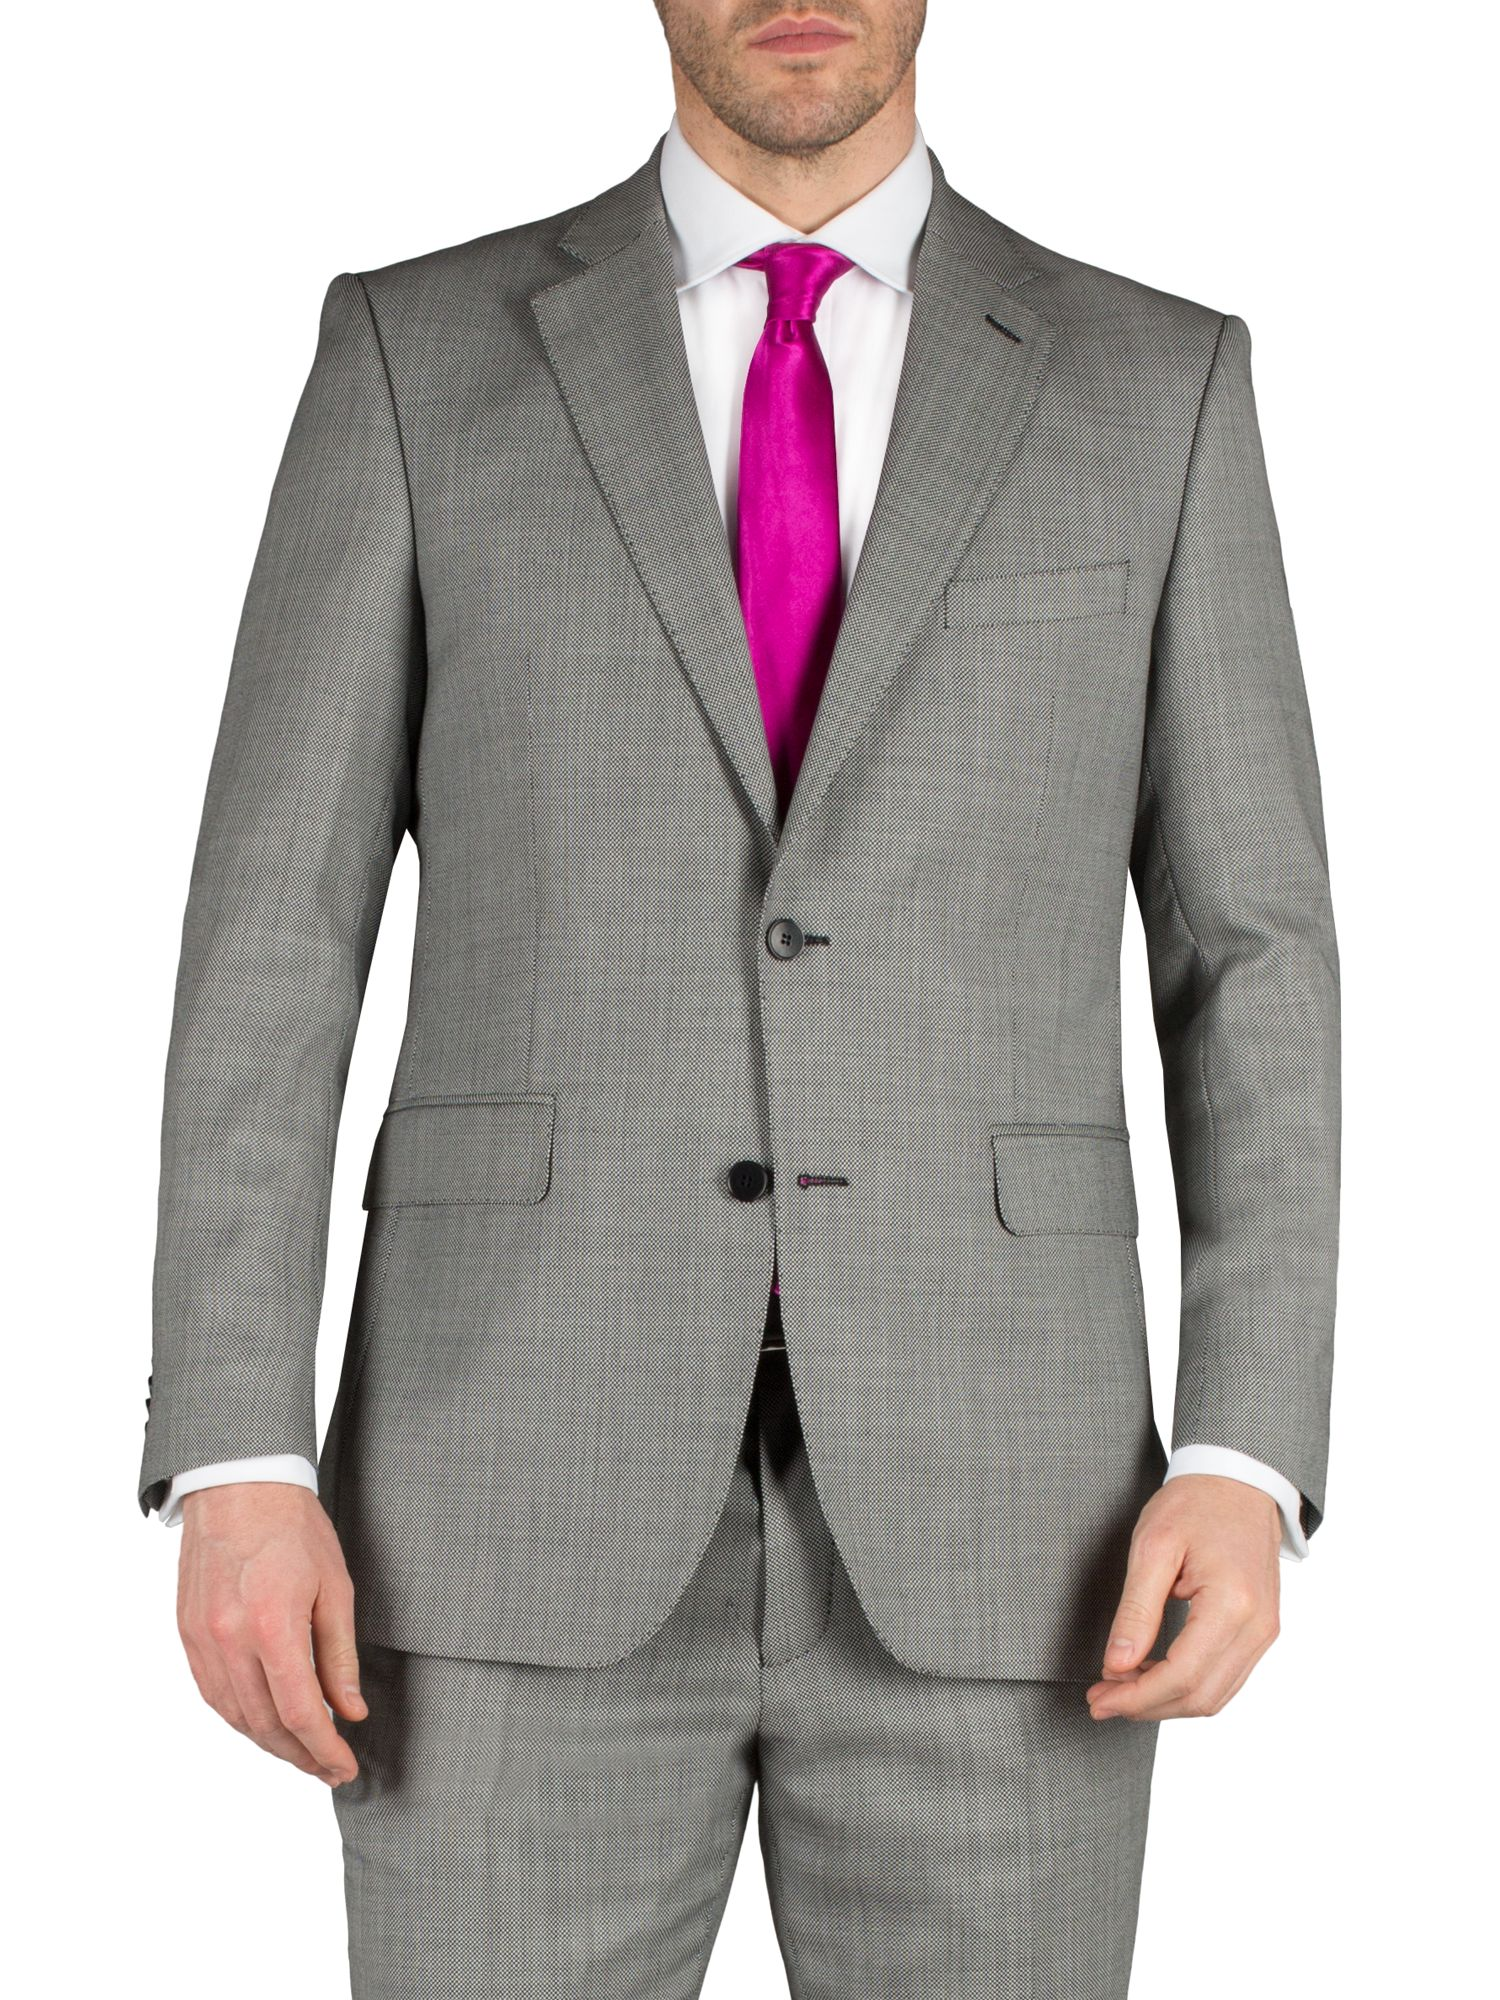 Birdseye notch single breasted suit jacket